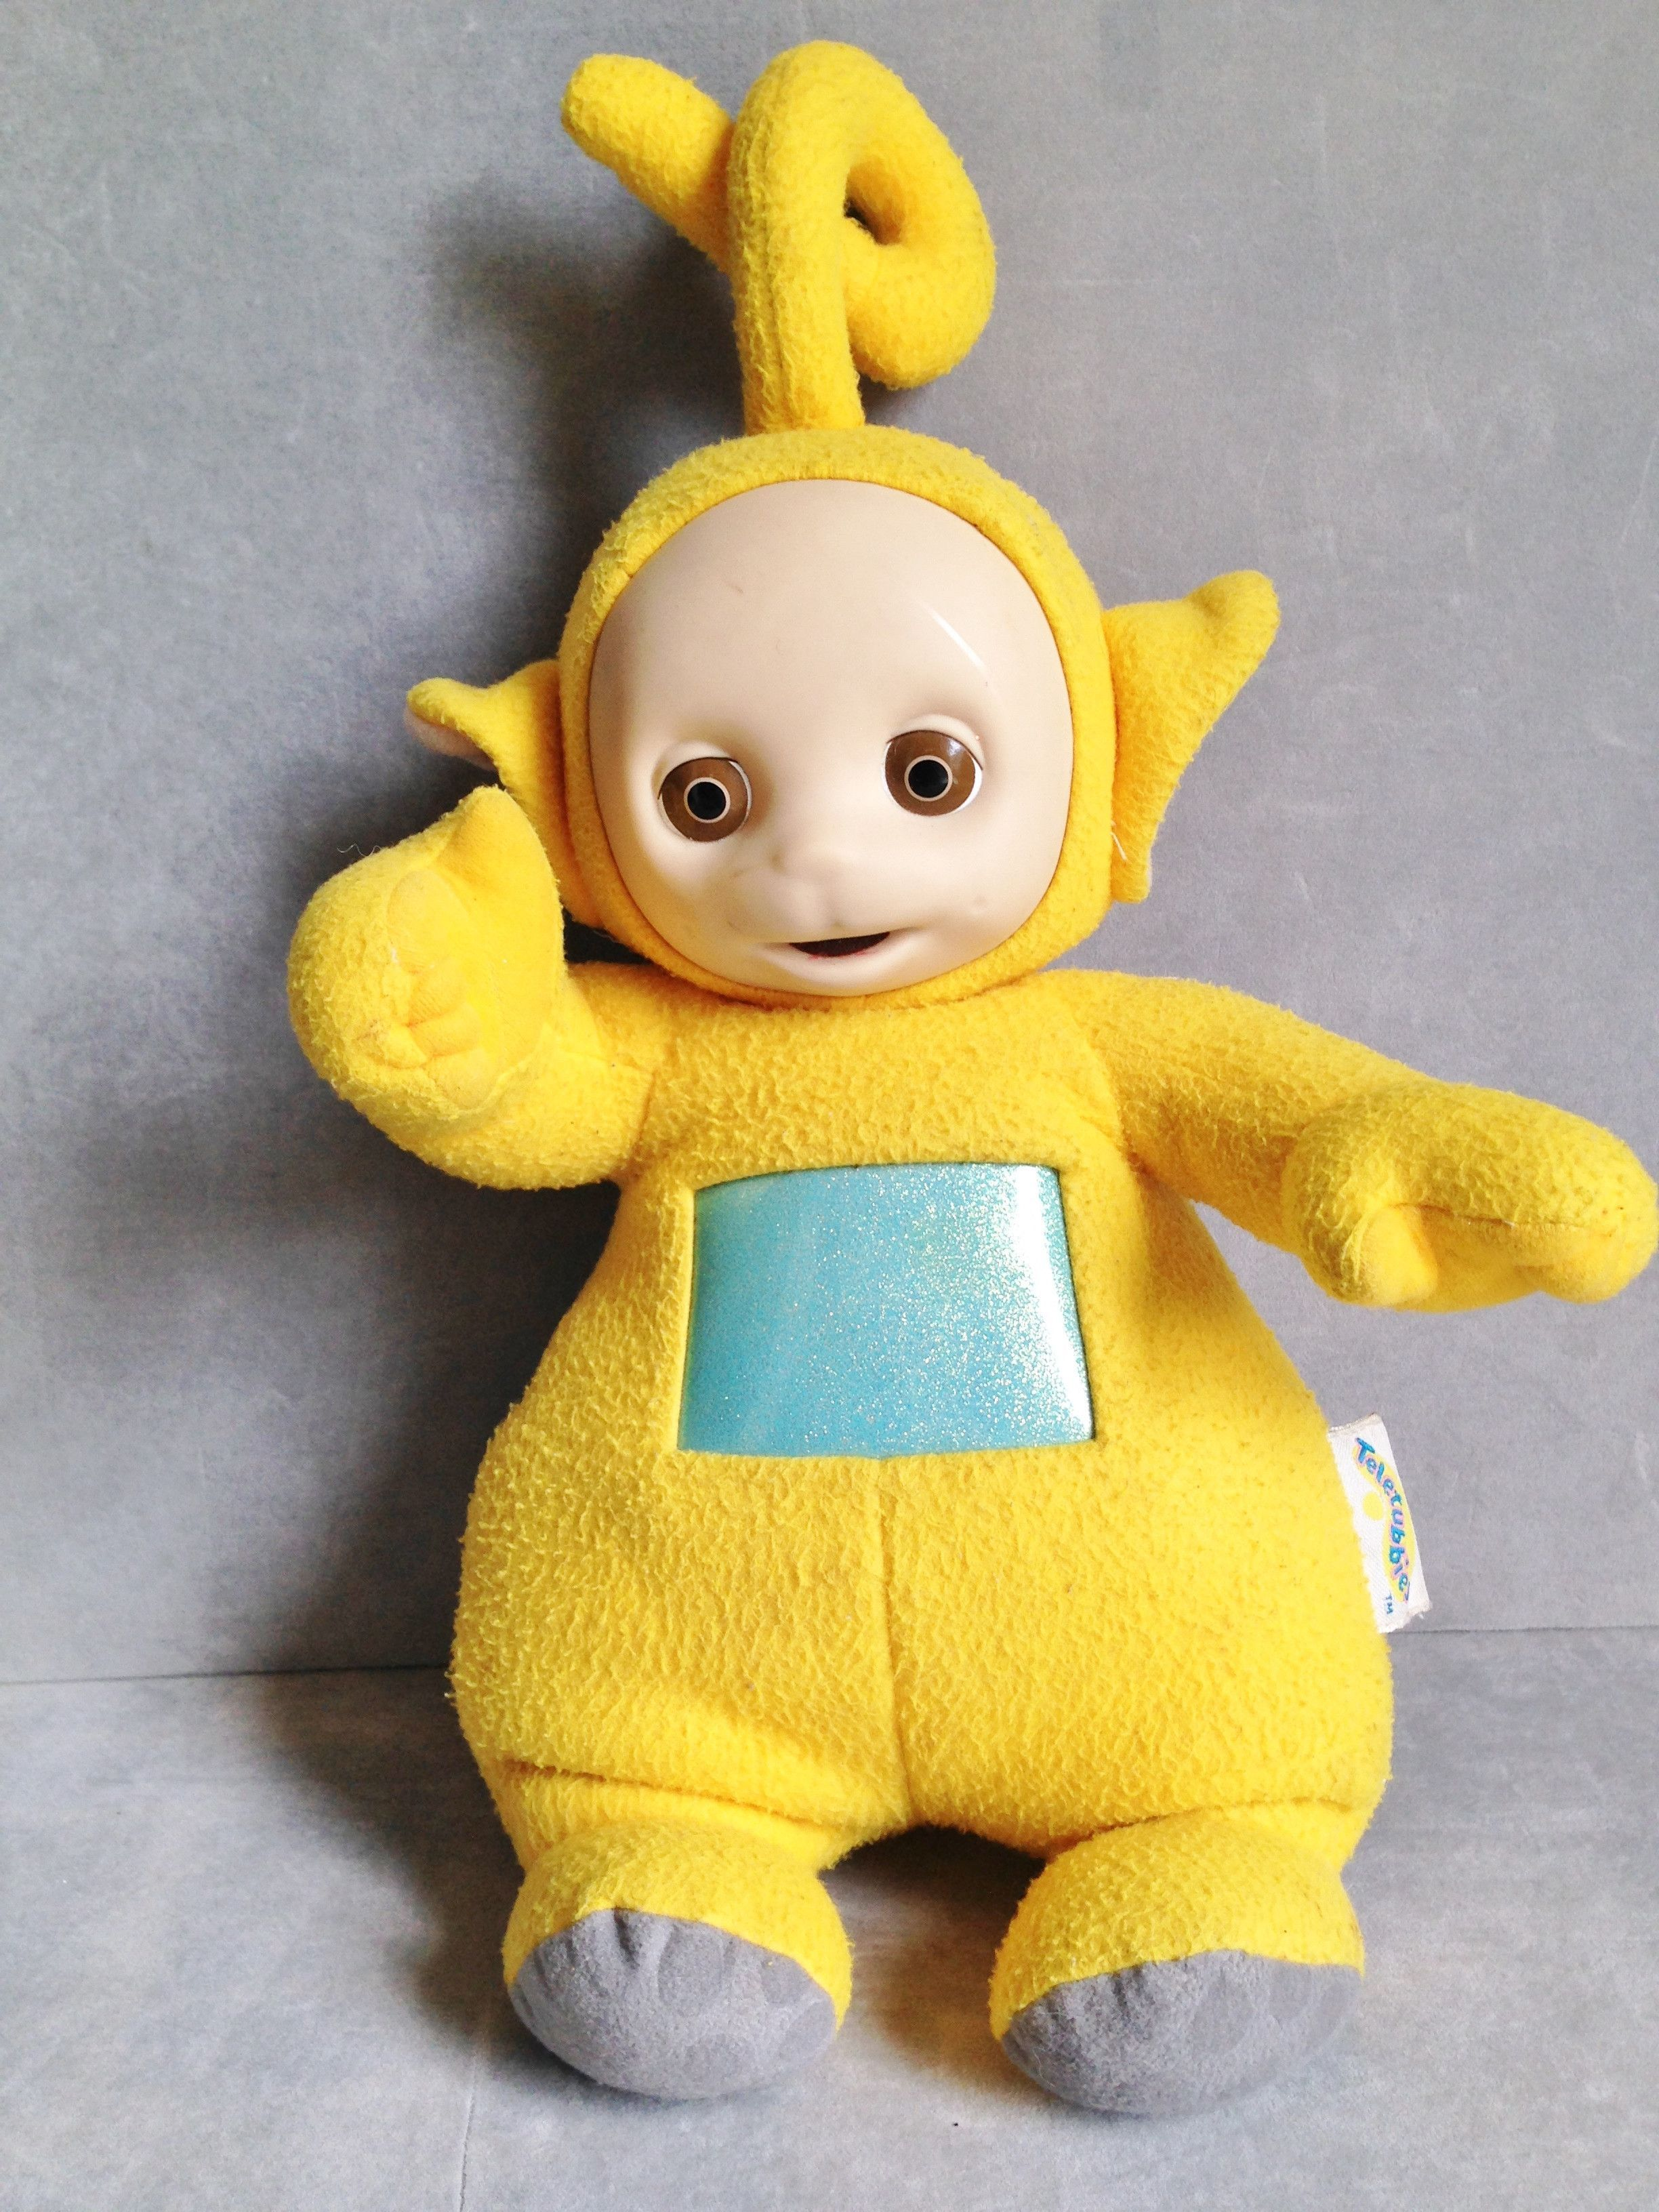 1998 Teletubbies La La Yellow Plush Talking Doll  452568a85b30